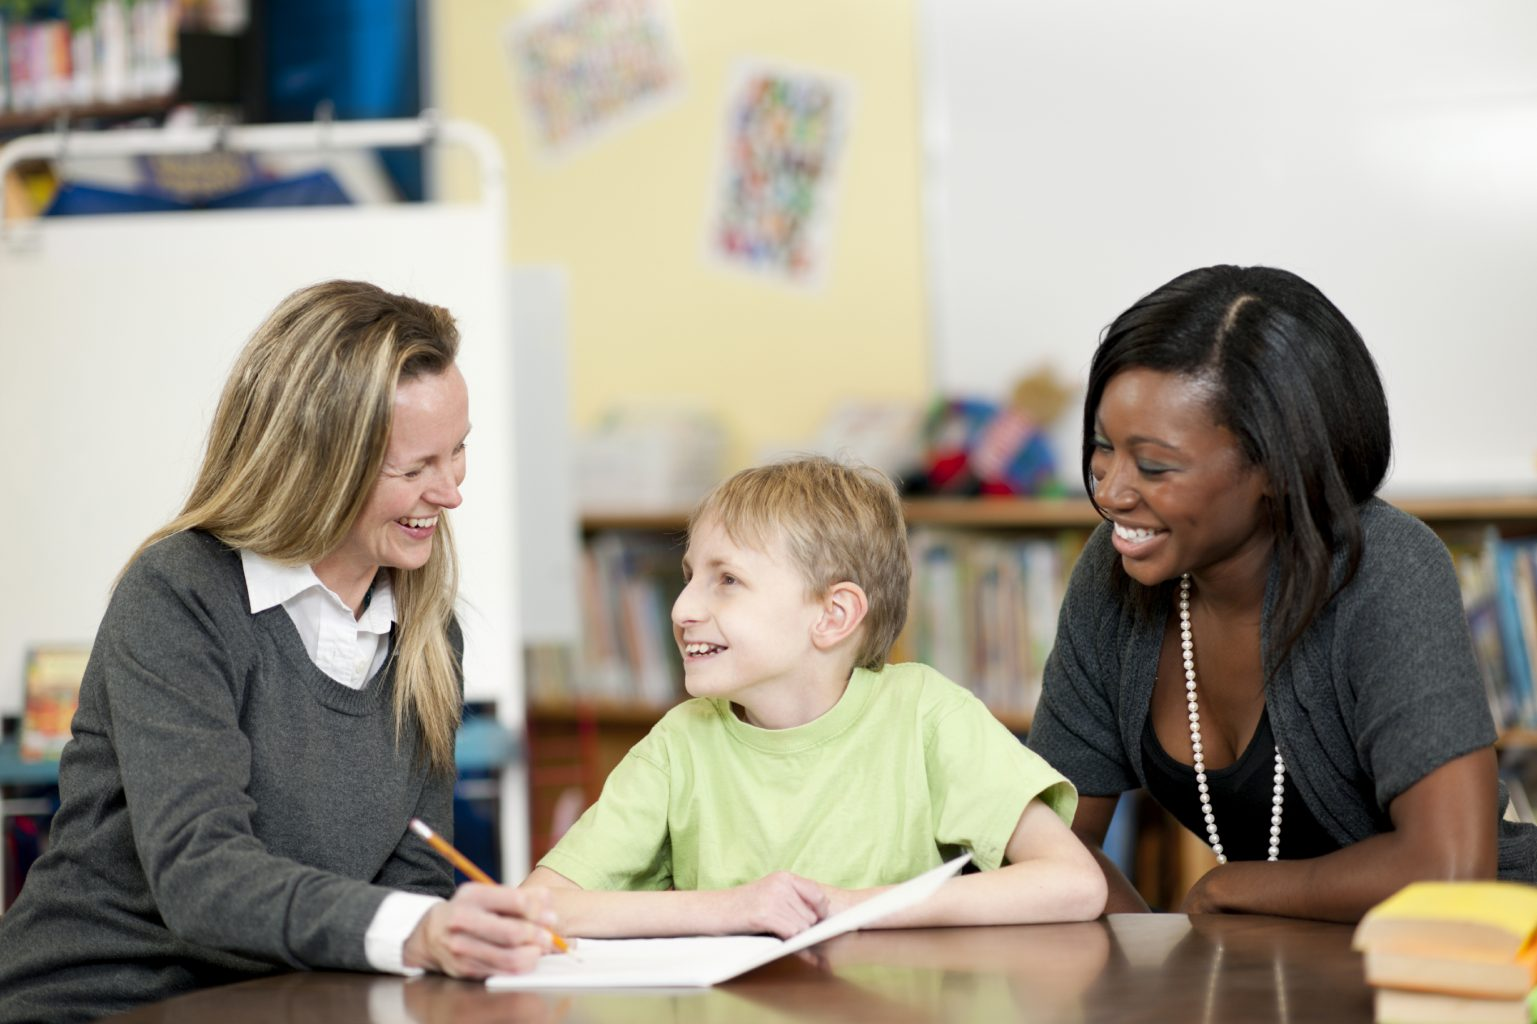 Boy in wheelchair with two teachers at school